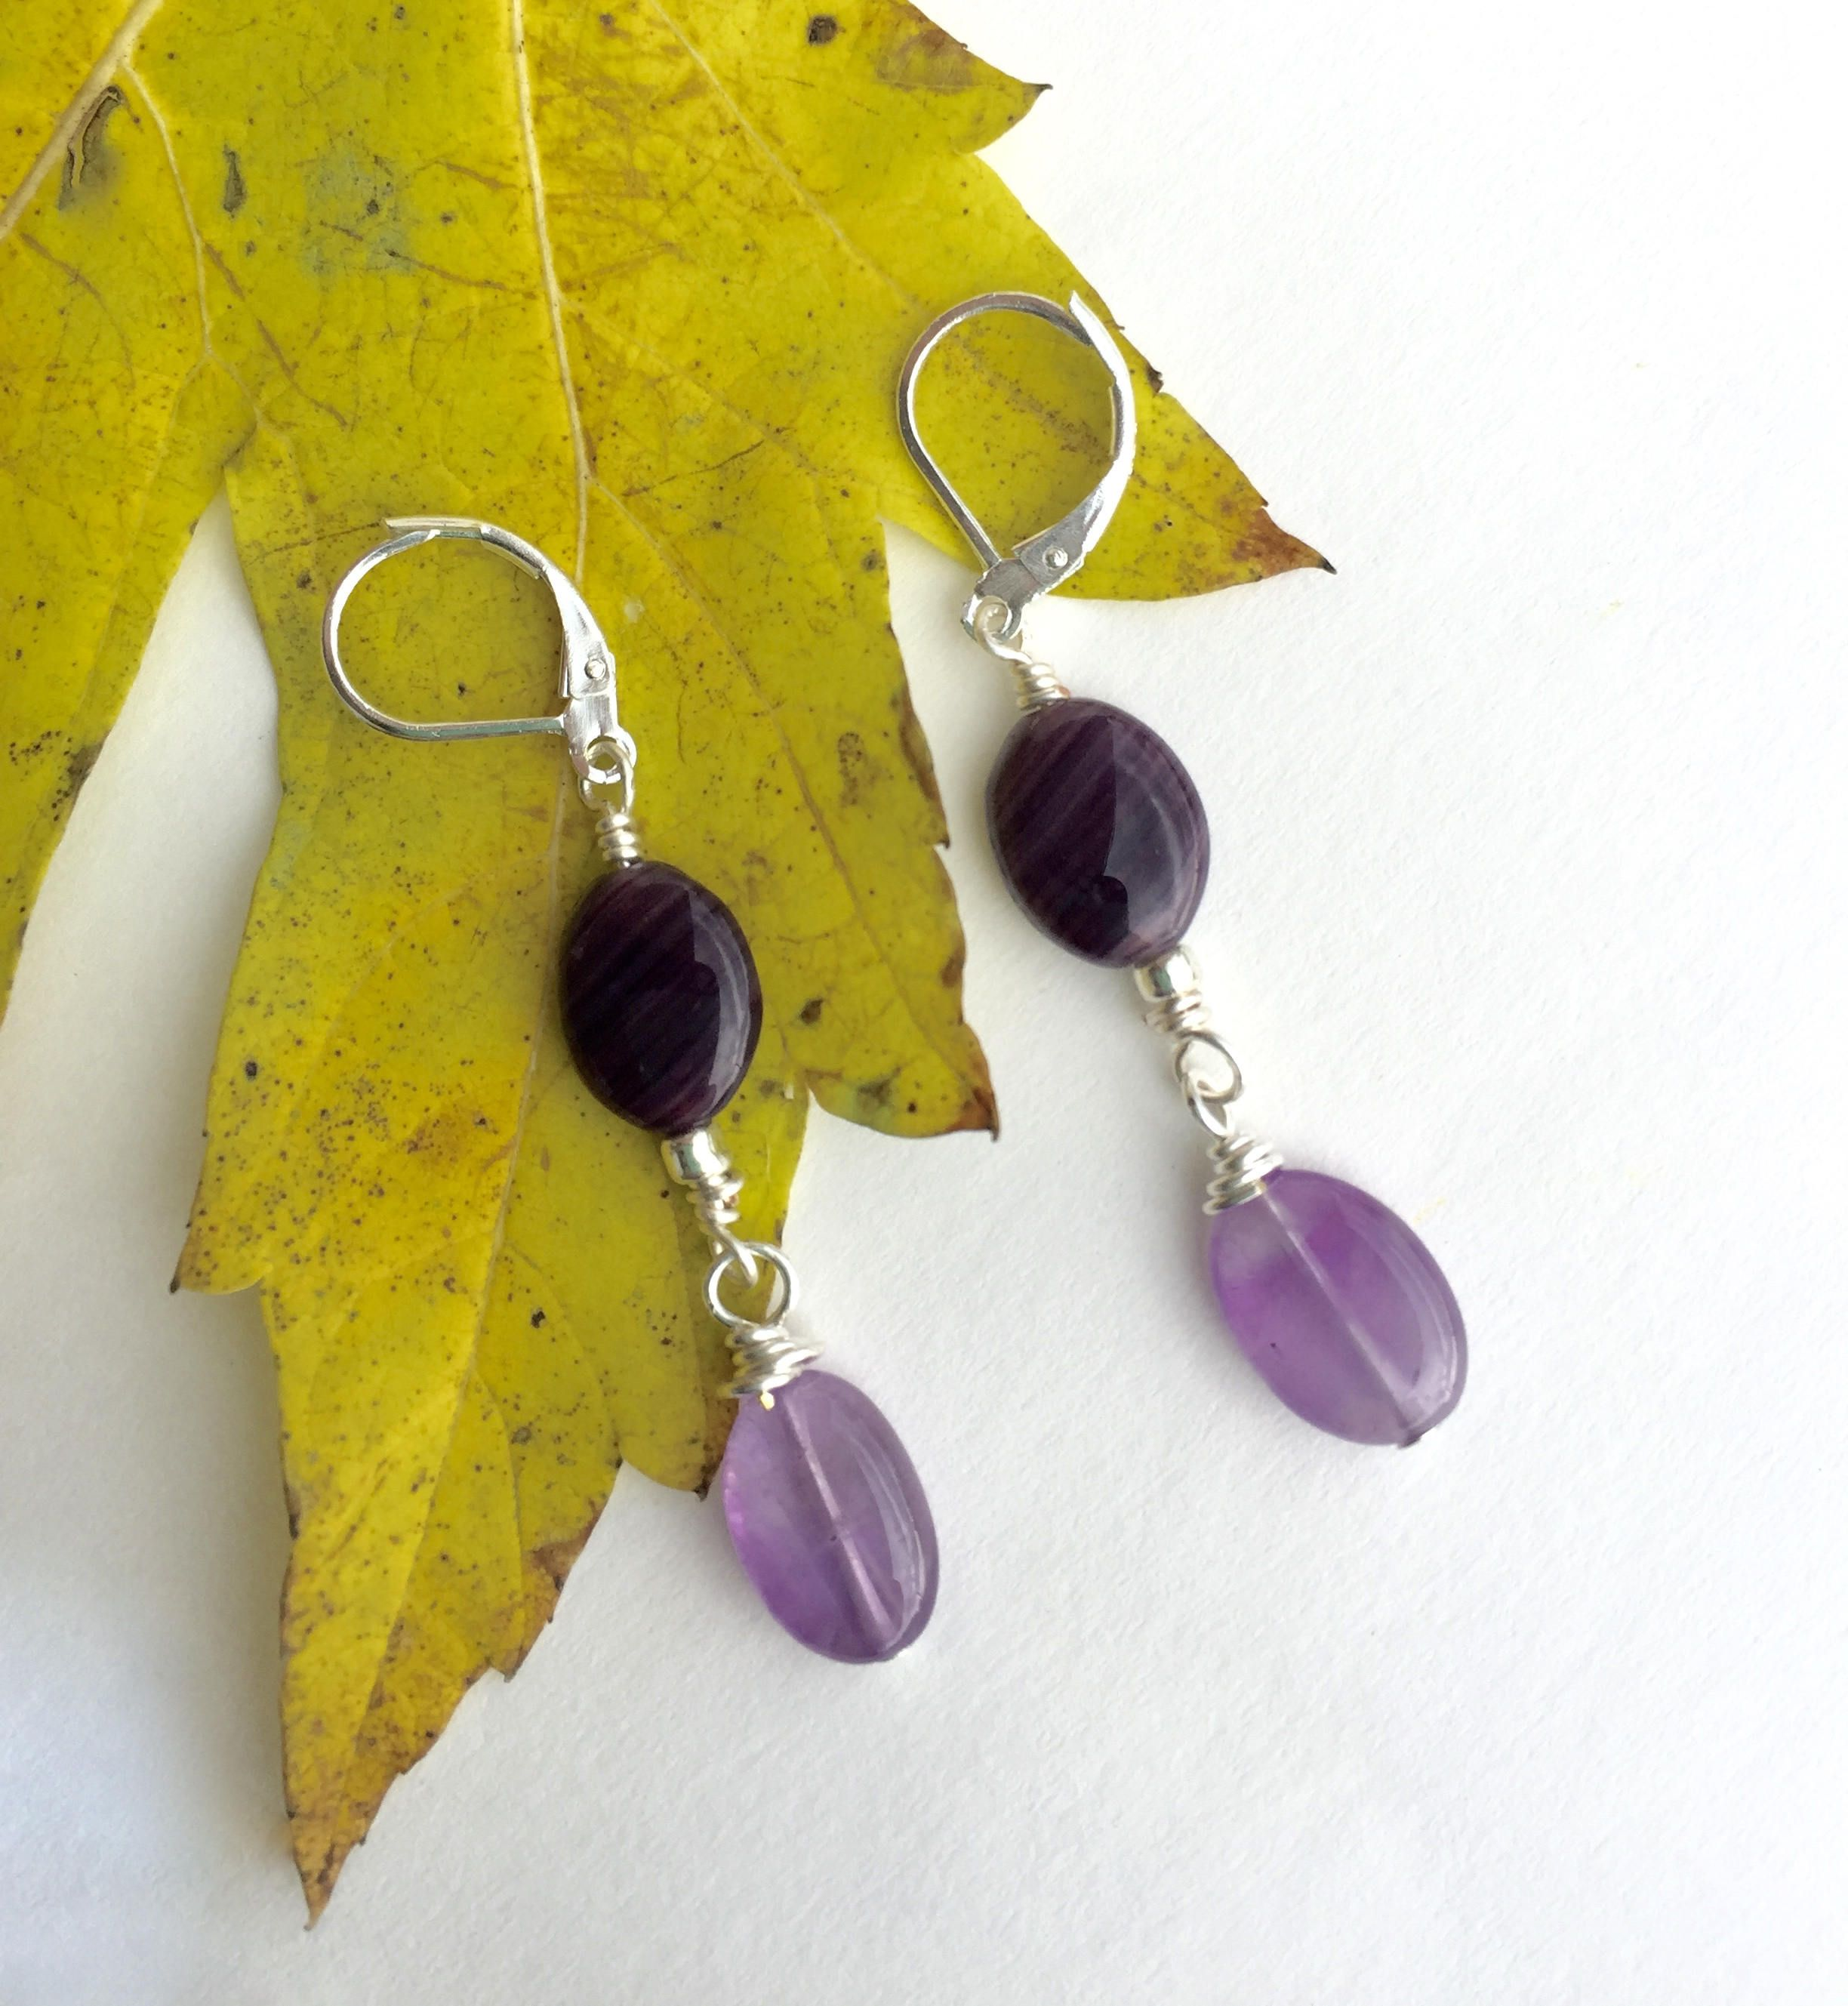 Amethyst Earrings, Purple Earrings, Lever Back Earrings, https ...